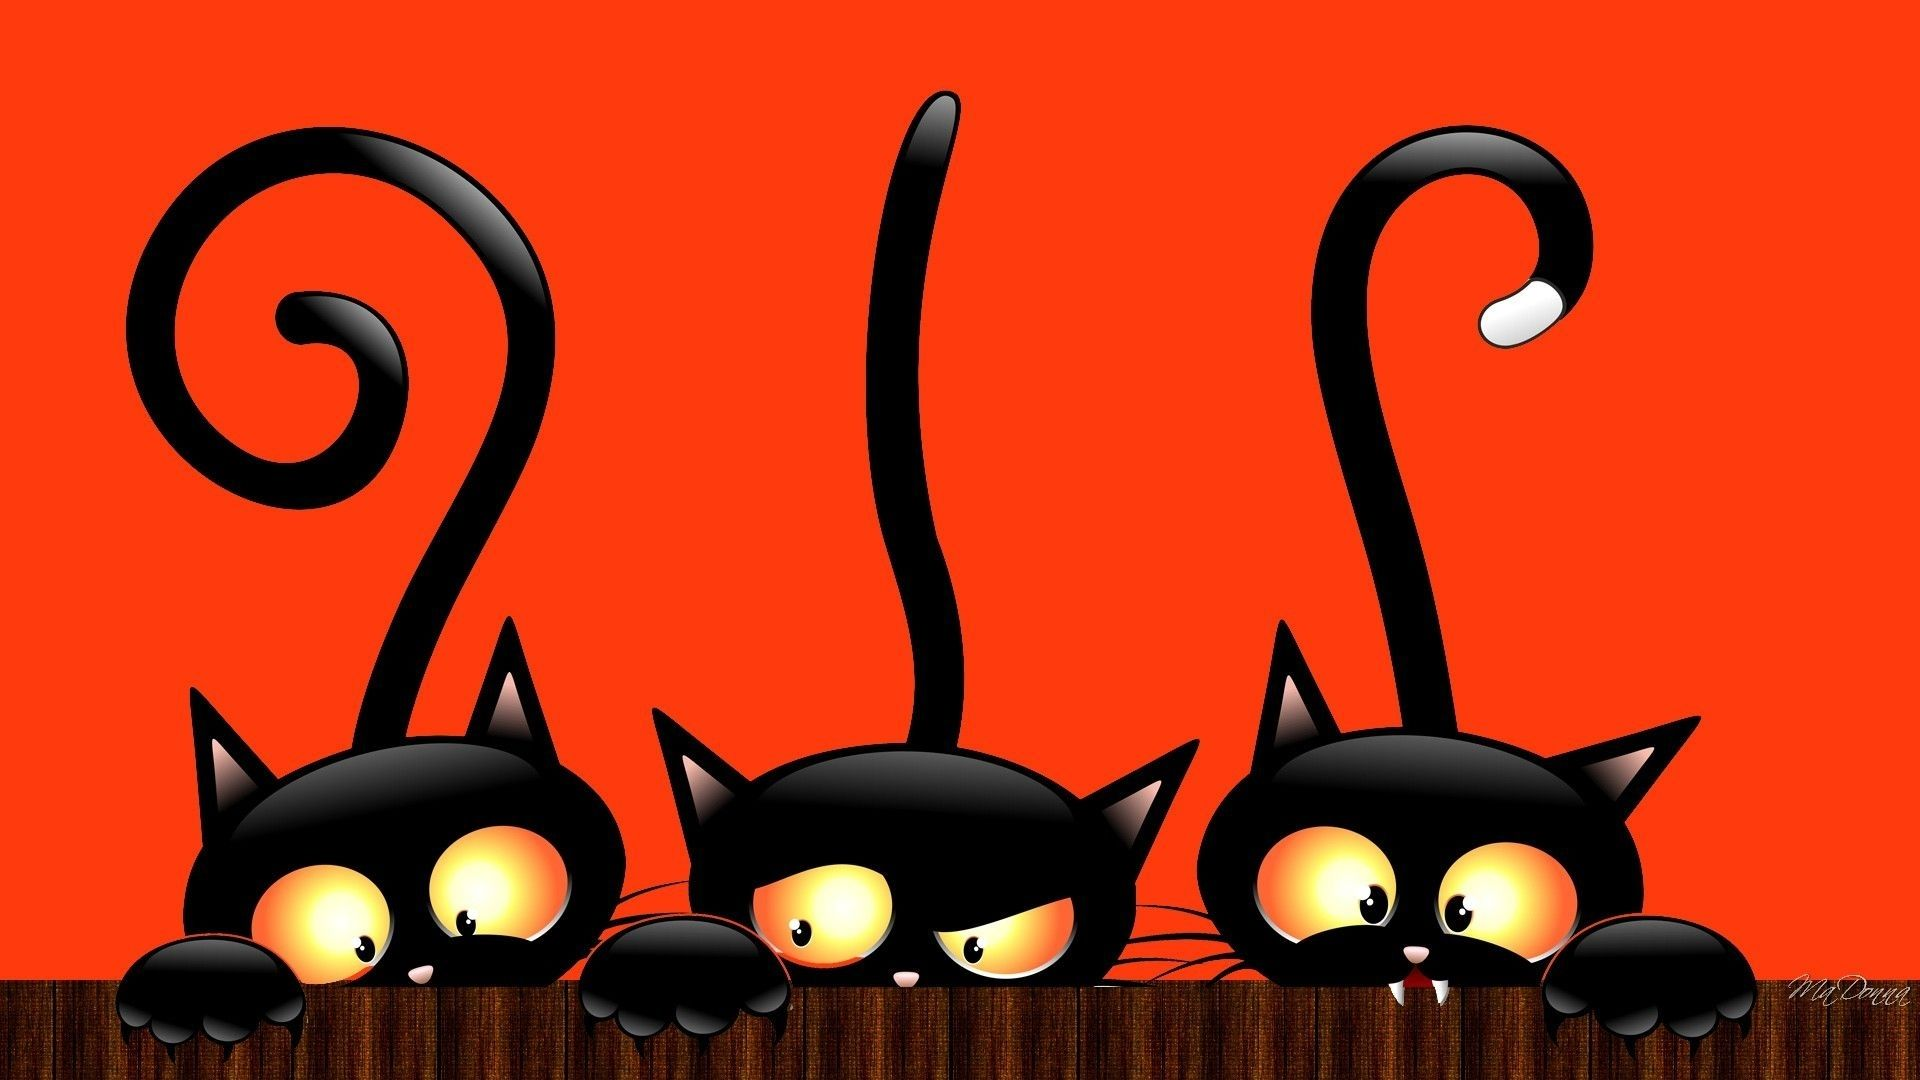 10 New Cute Cat Halloween Backgrounds Full Hd 1920 1080 For Pc Desktop Halloween Wallpaper Hello Kitty Halloween Wallpaper Halloween Backgrounds